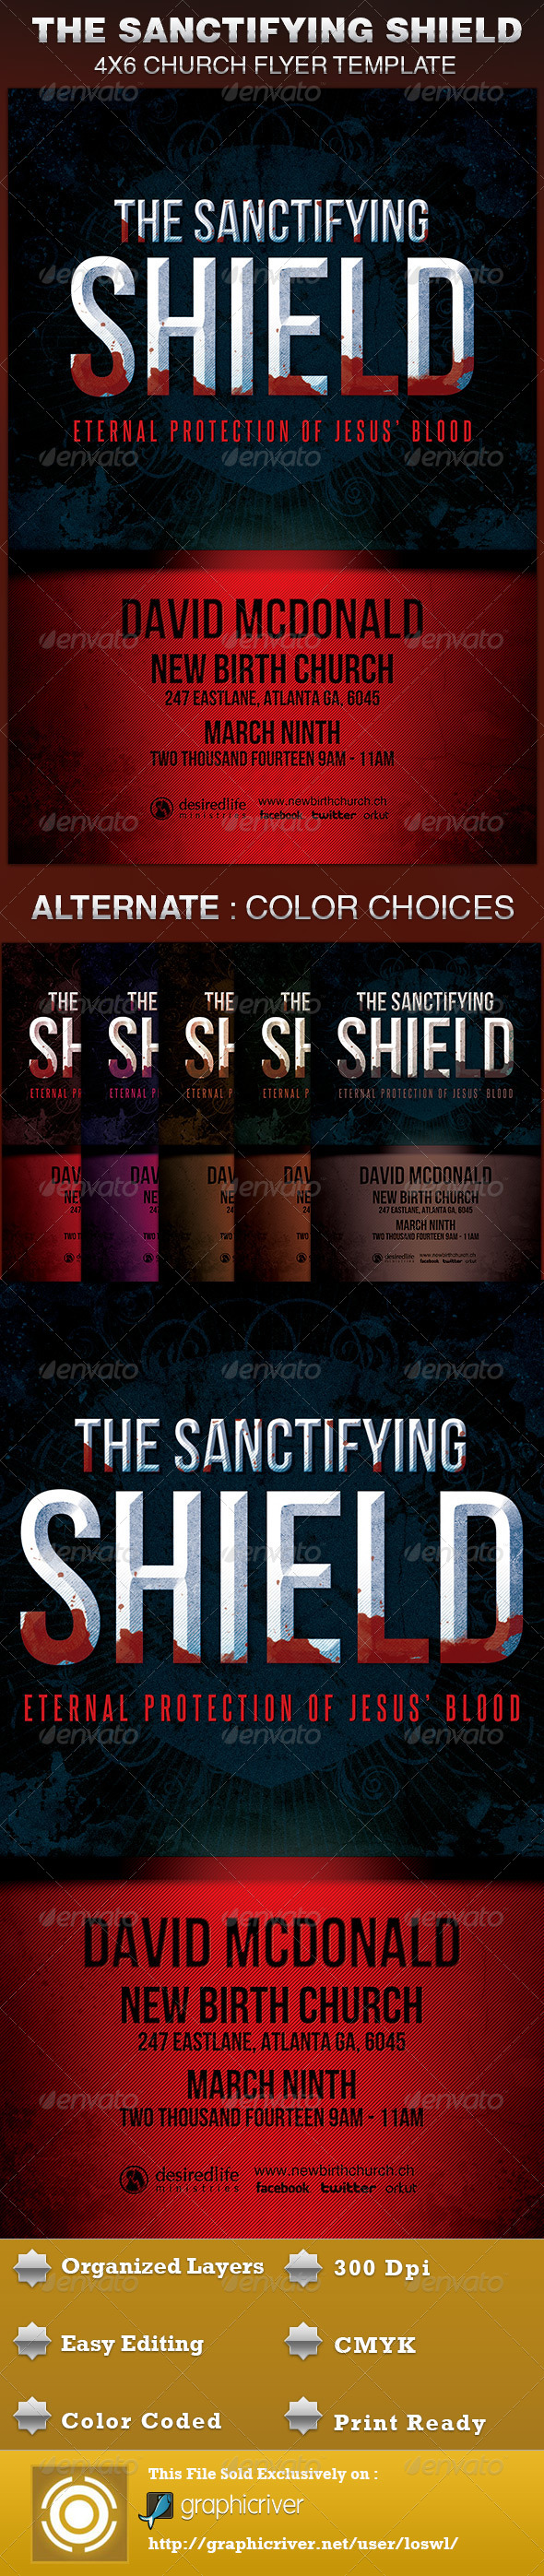 The Sanctifying Shield Church Flyer Template - Church Flyers